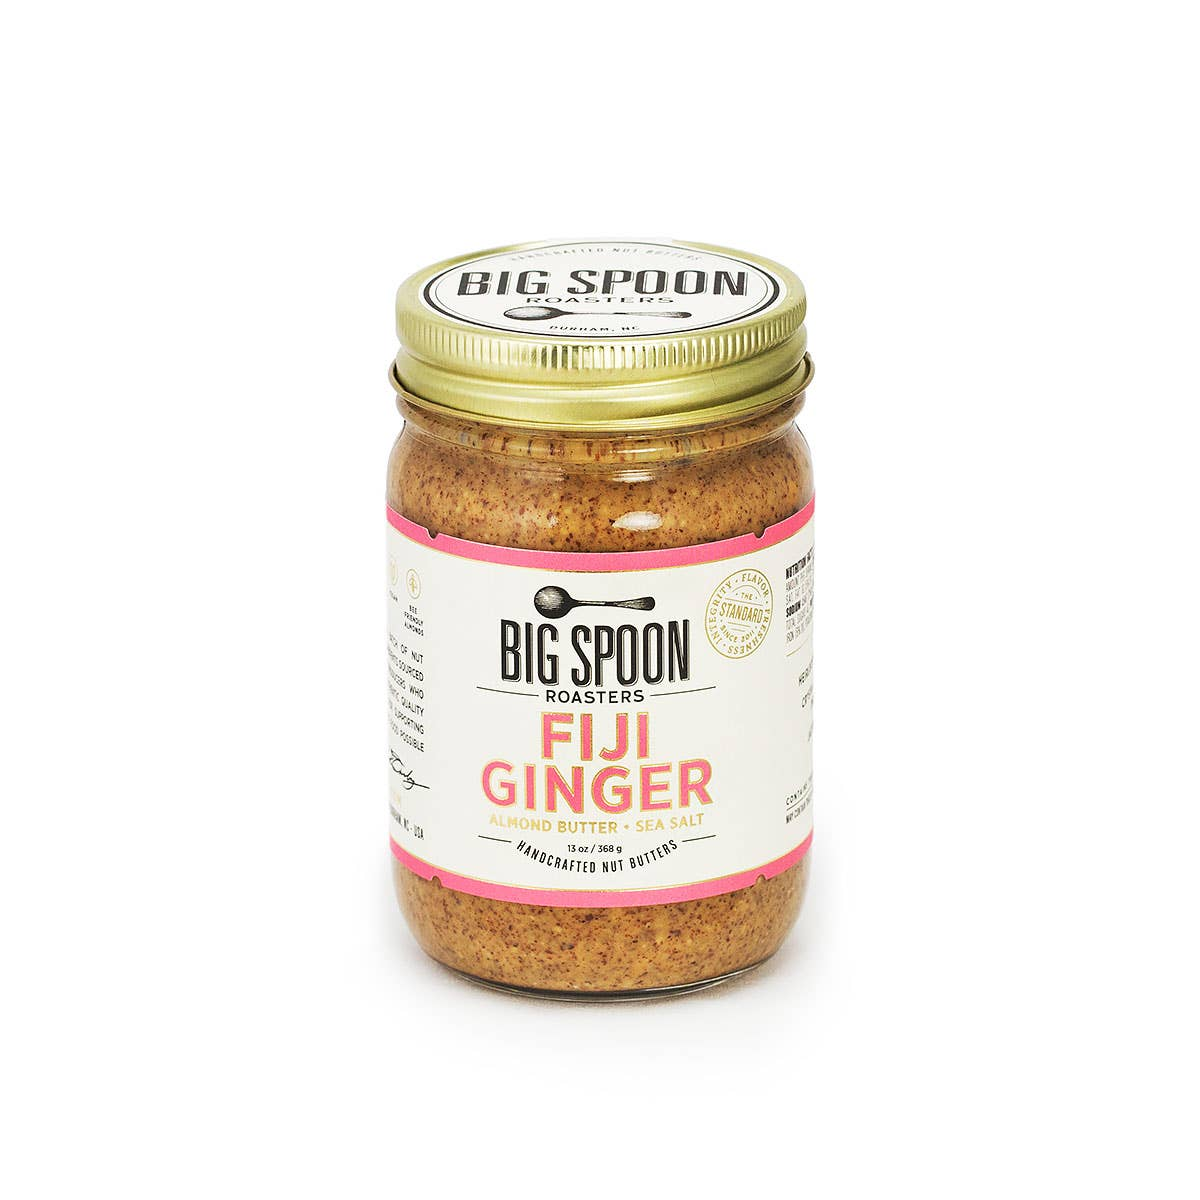 Fiji Ginger Almond Butter with Sea Salt